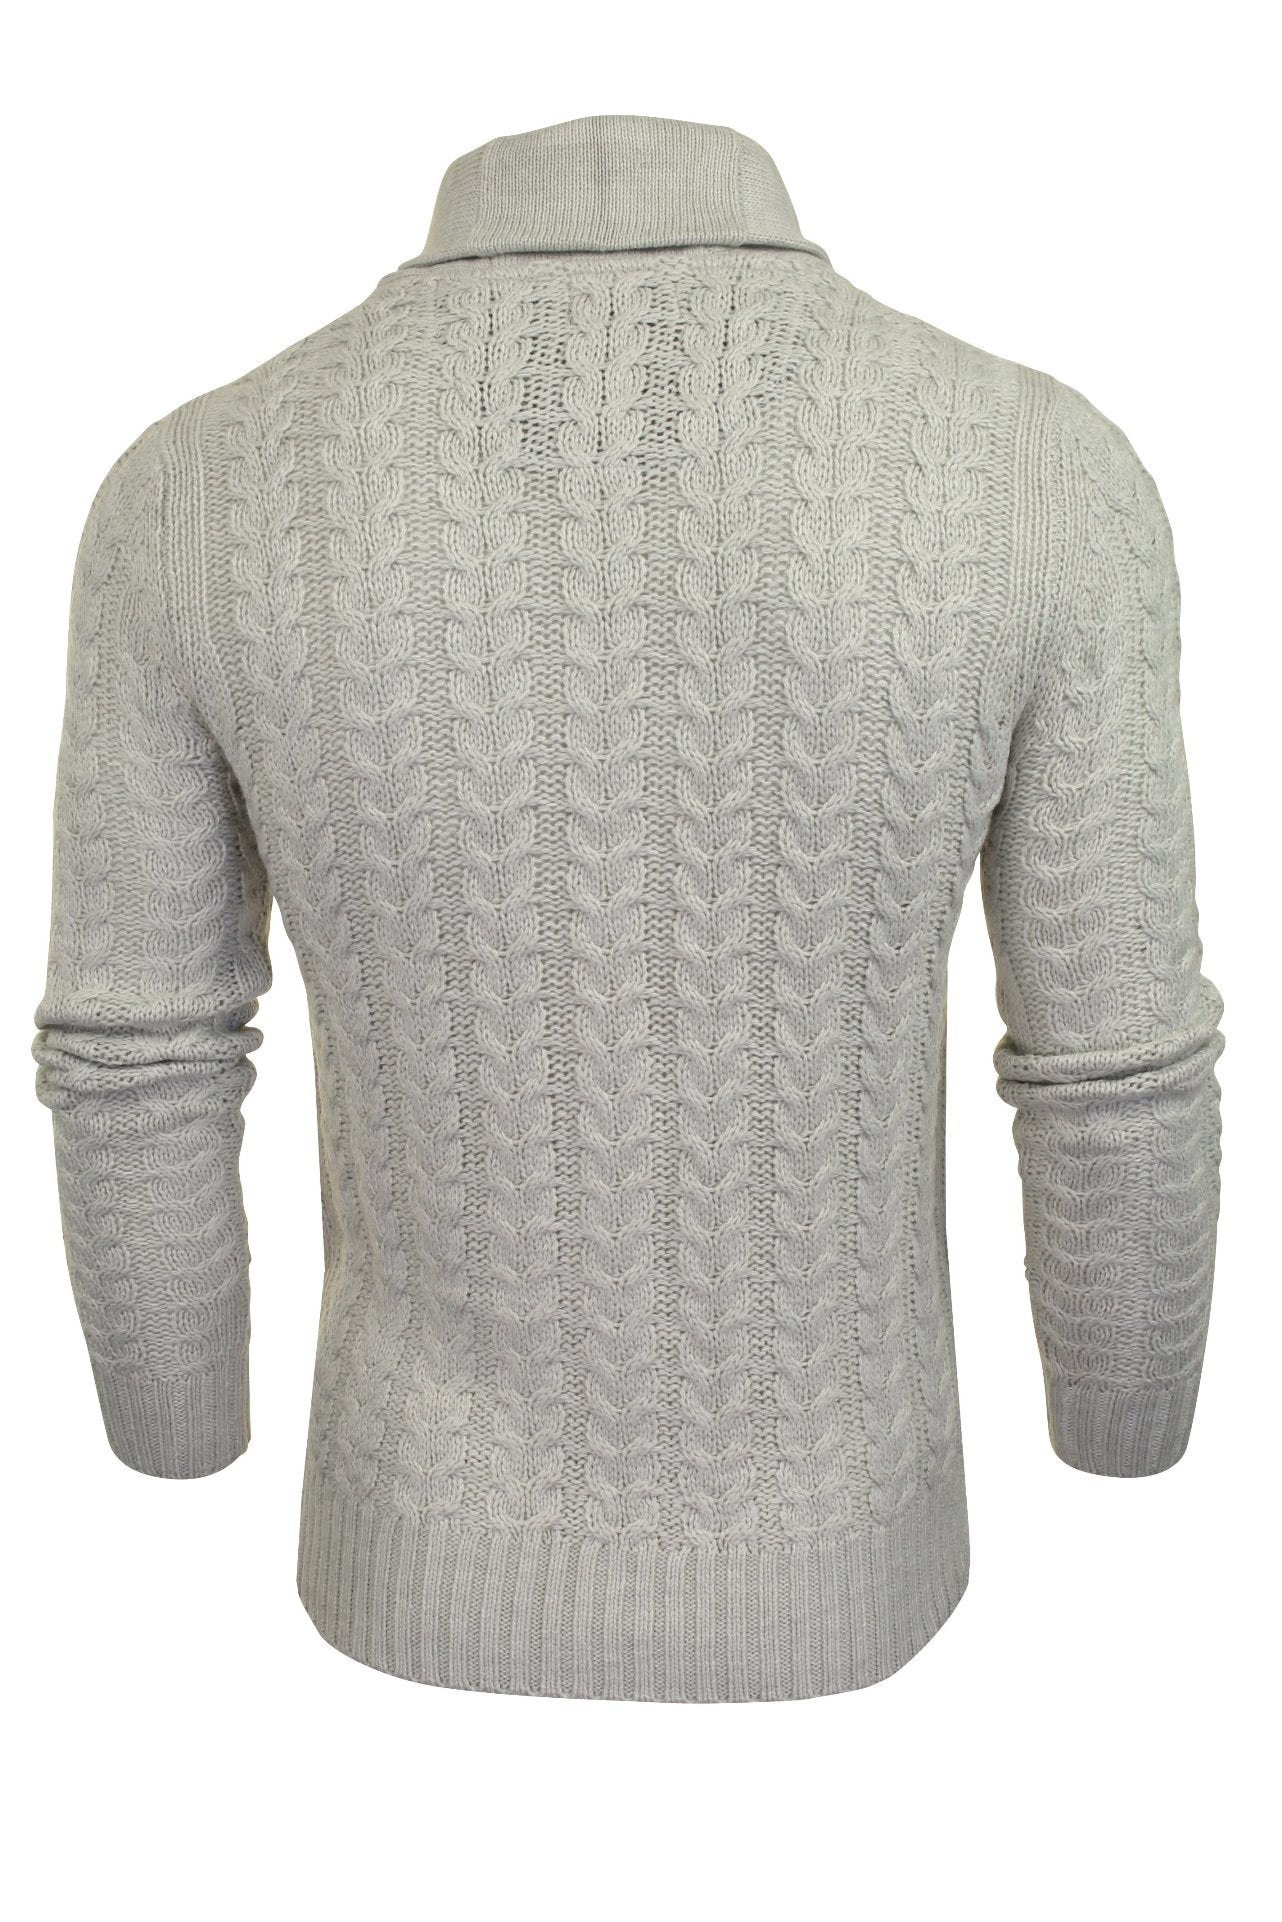 Brave Soul 'Schematic' Button Through Cardigan - All Over Knit Detail-3